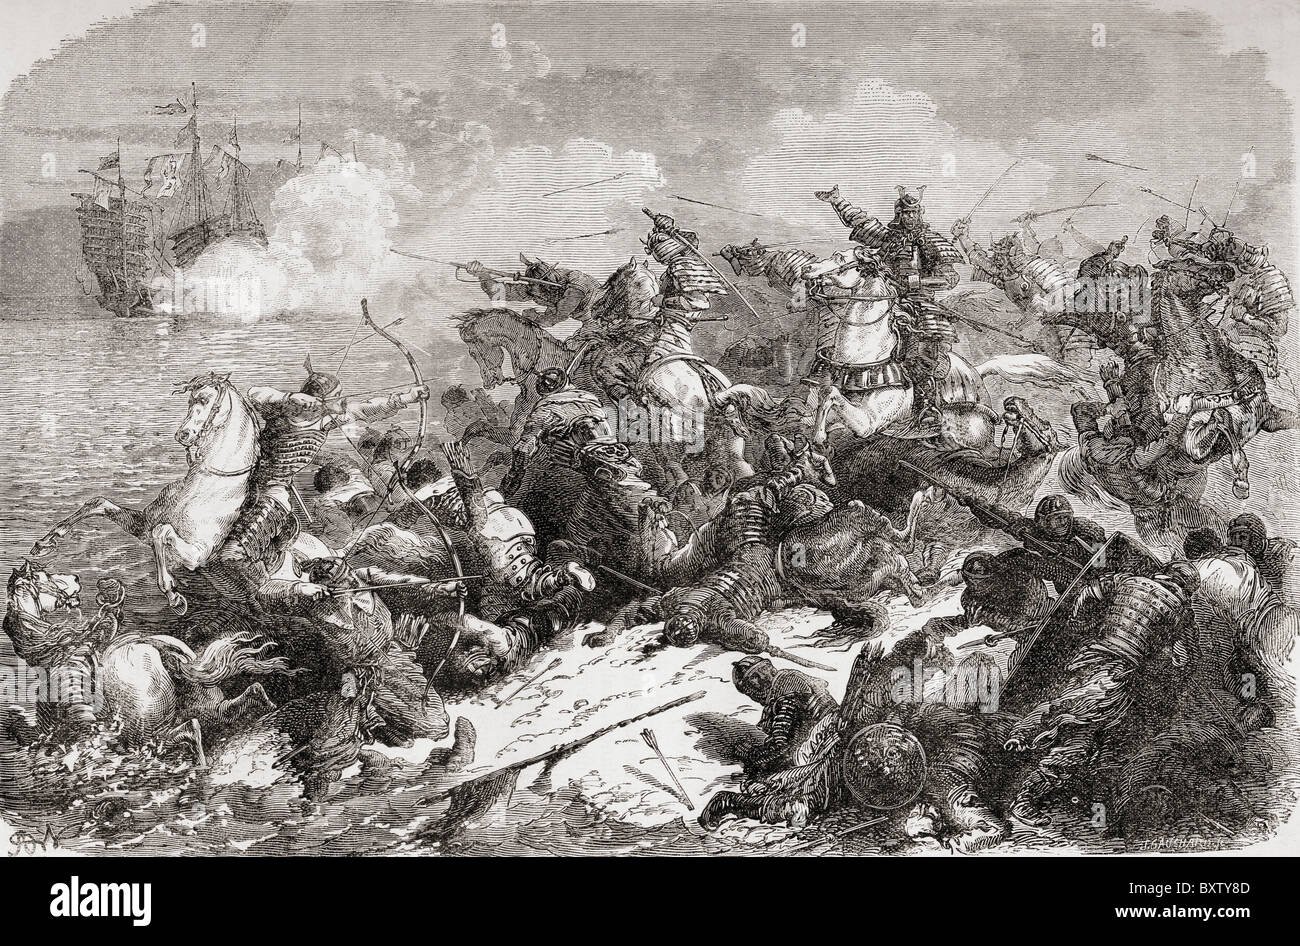 Chinese attempted invasion of Japan in the 13th century. - Stock Image